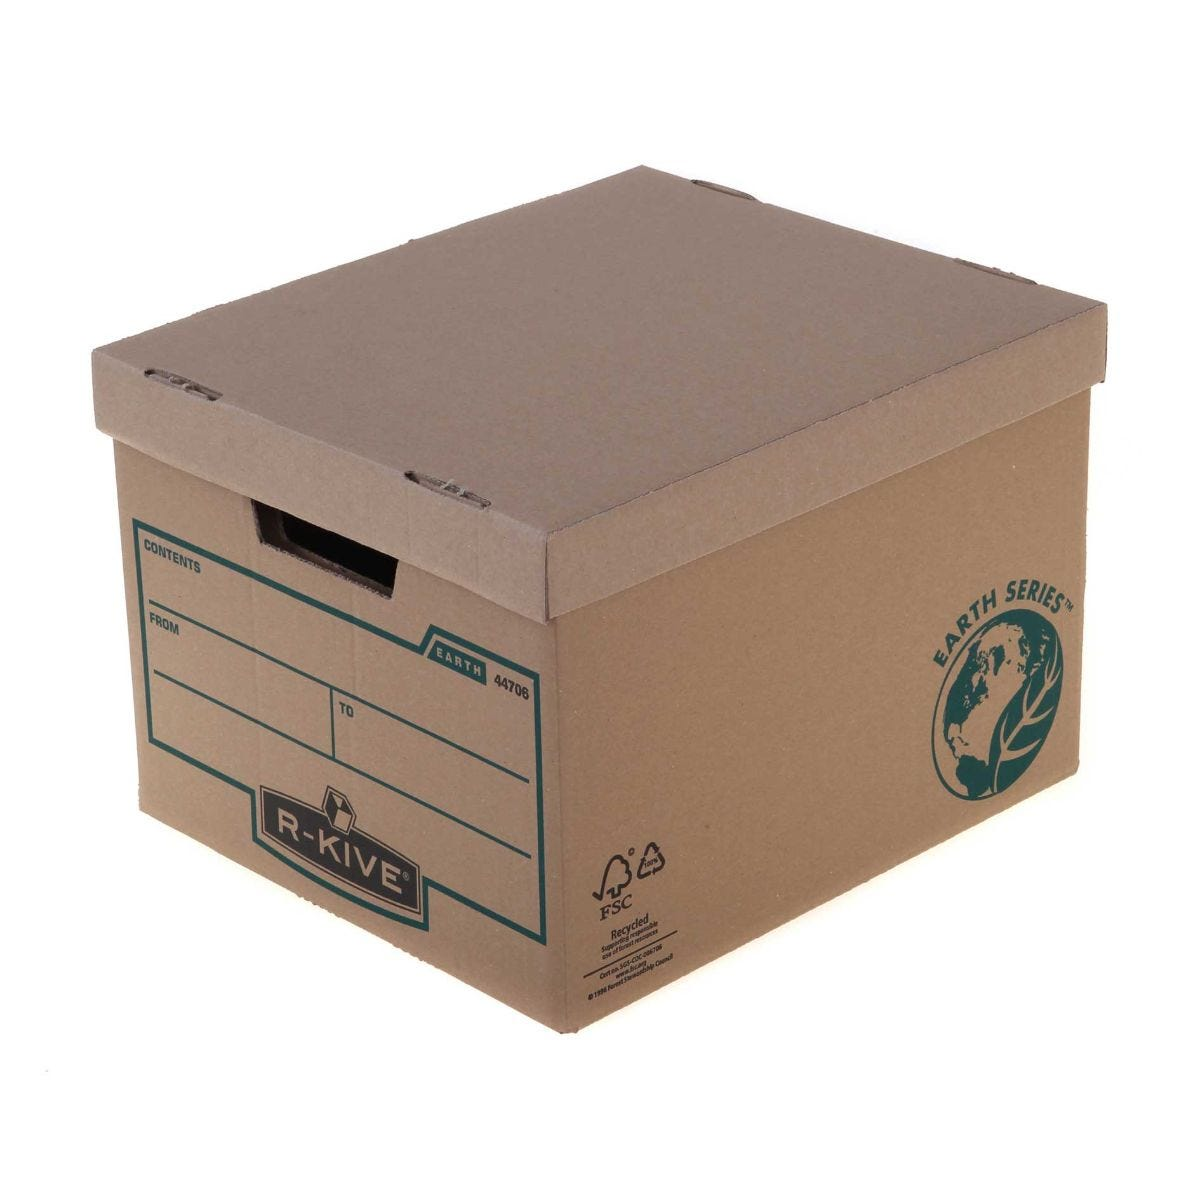 Image of Bankers Box Earth Series Standard Storage Box